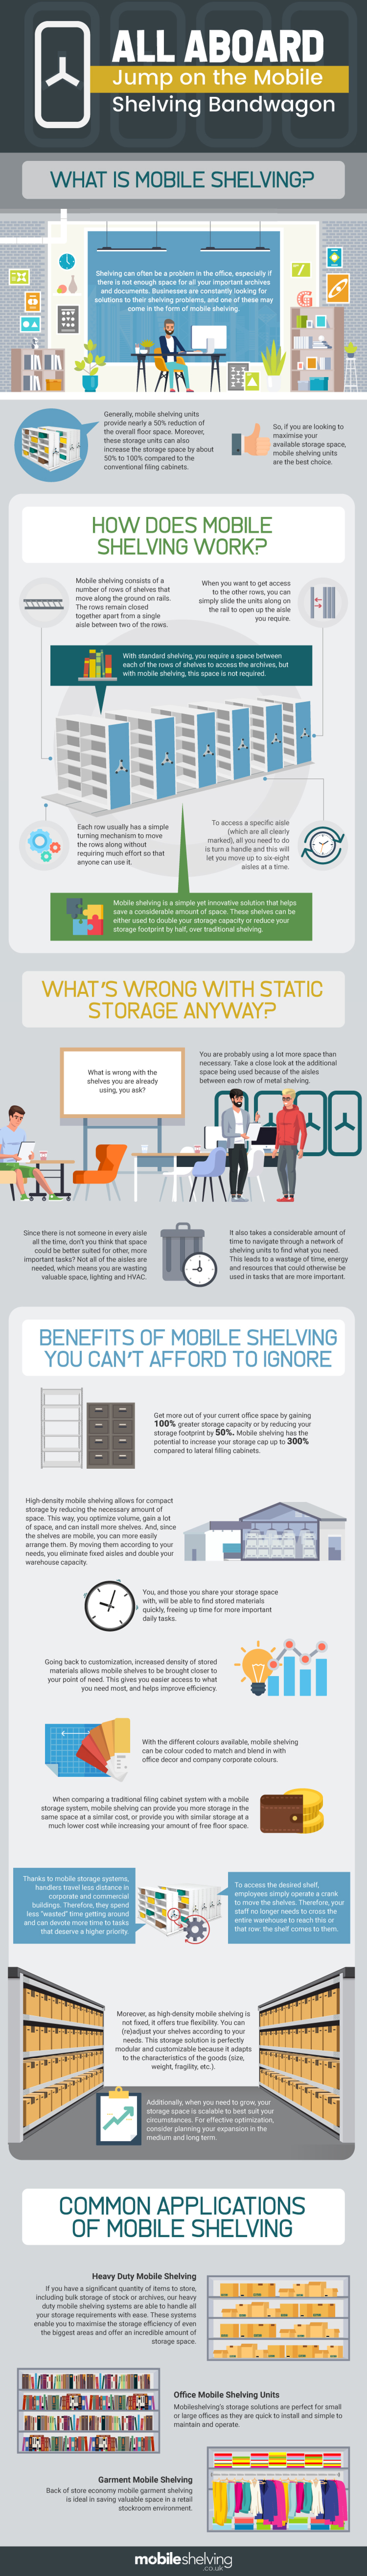 What is Mobile Shelving? Infographic